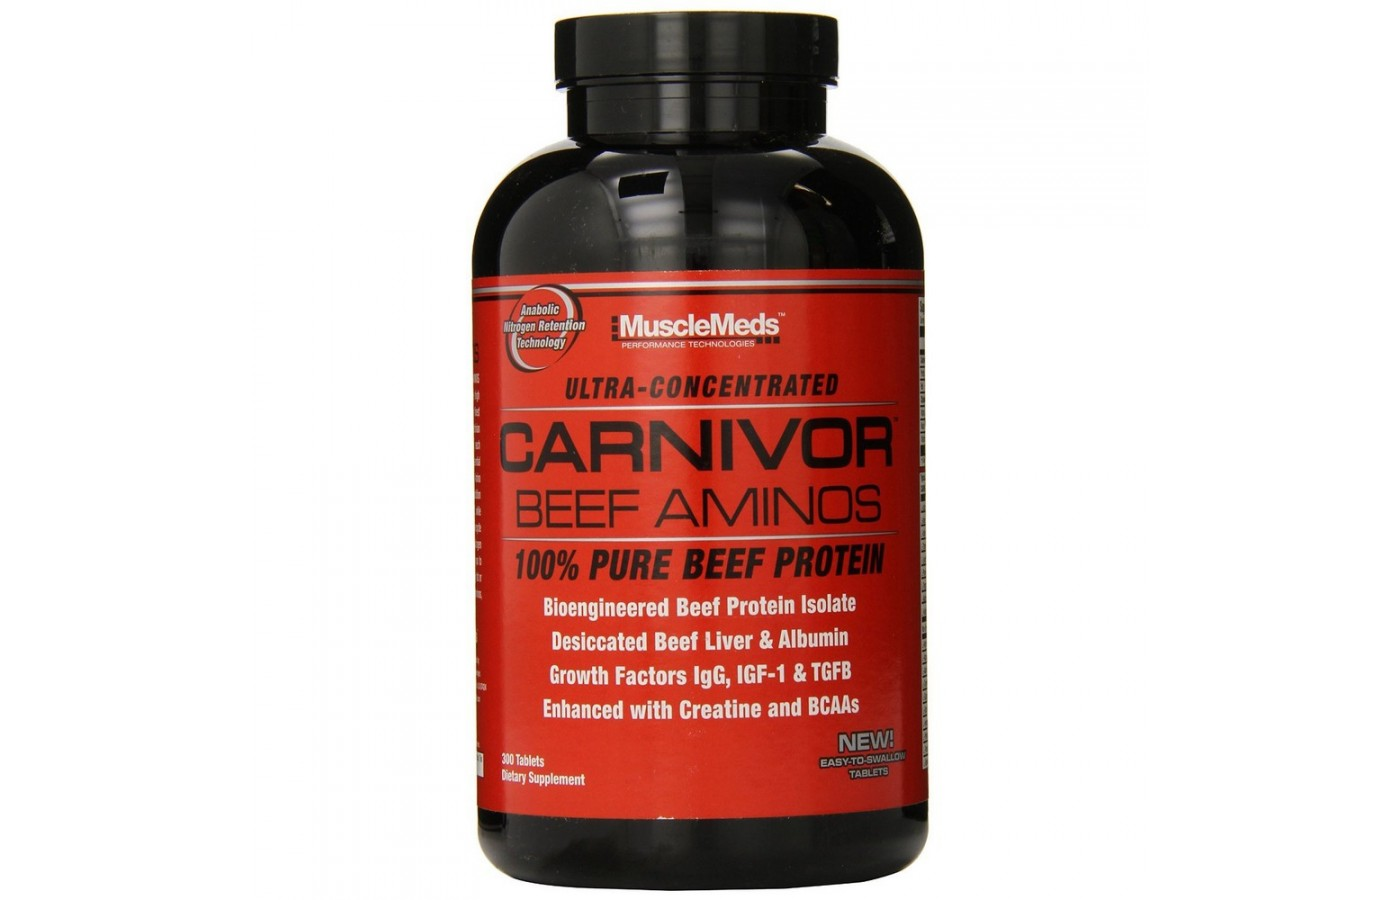 Carnivore front